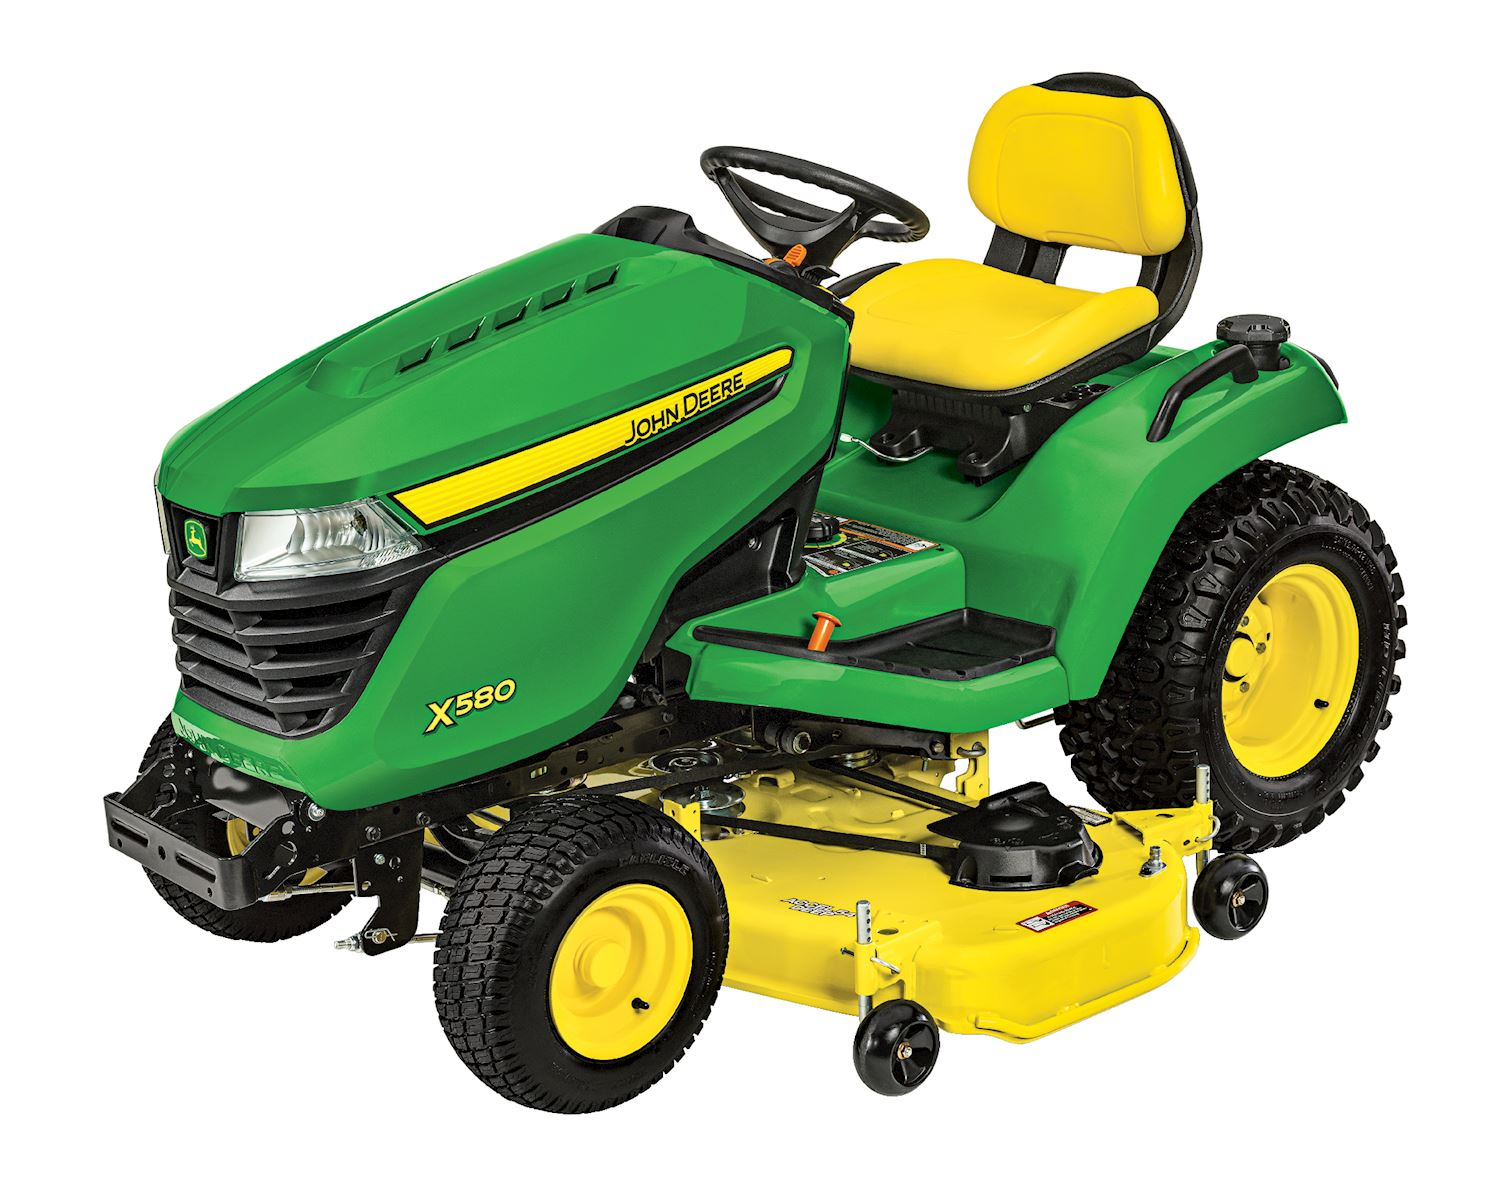 Save $500 on New John Deere X500 Select Series Lawn Tractors